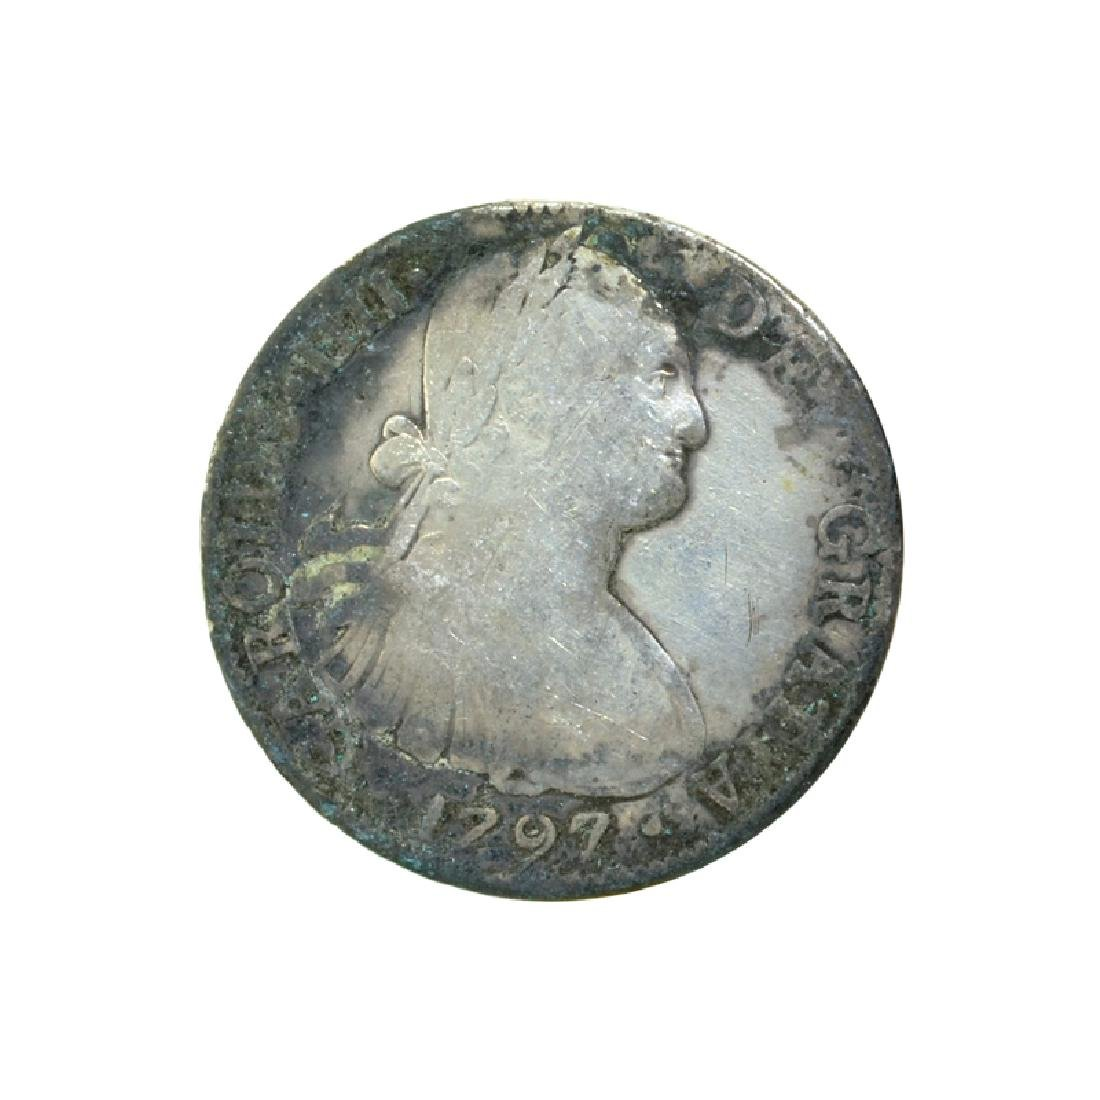 1797 Extremely Rare Eight Reales American First Silver